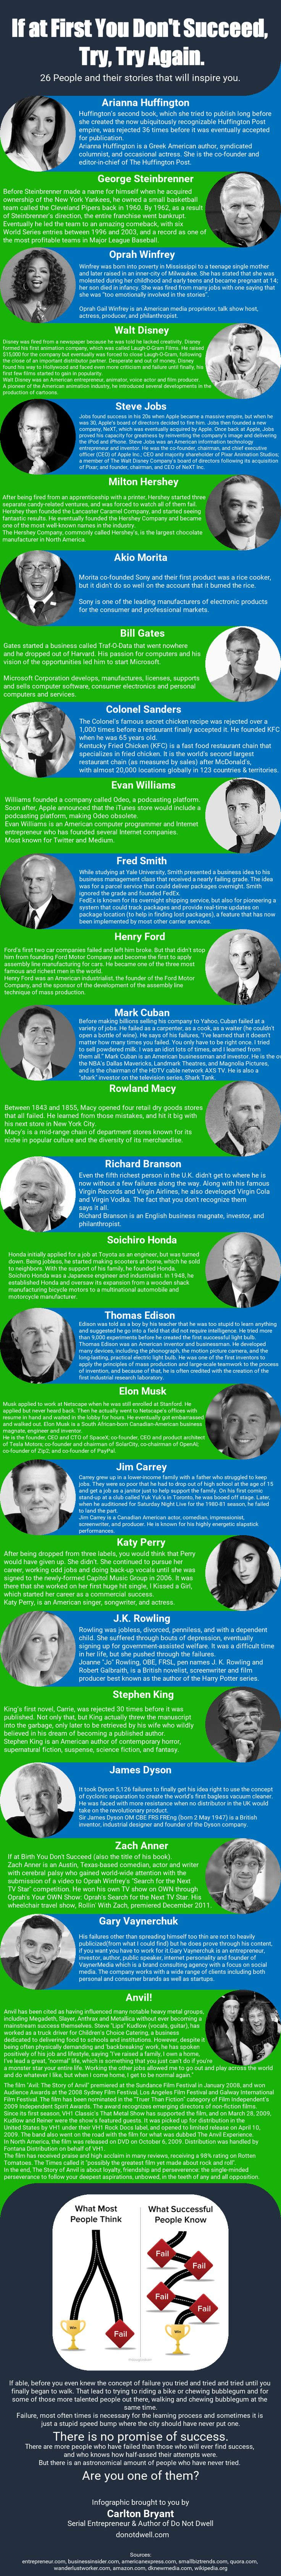 If at First You Don't Succeed, Try, Try Again. This is a motivational infographic to keep entrepreneurs and beginners inspired.